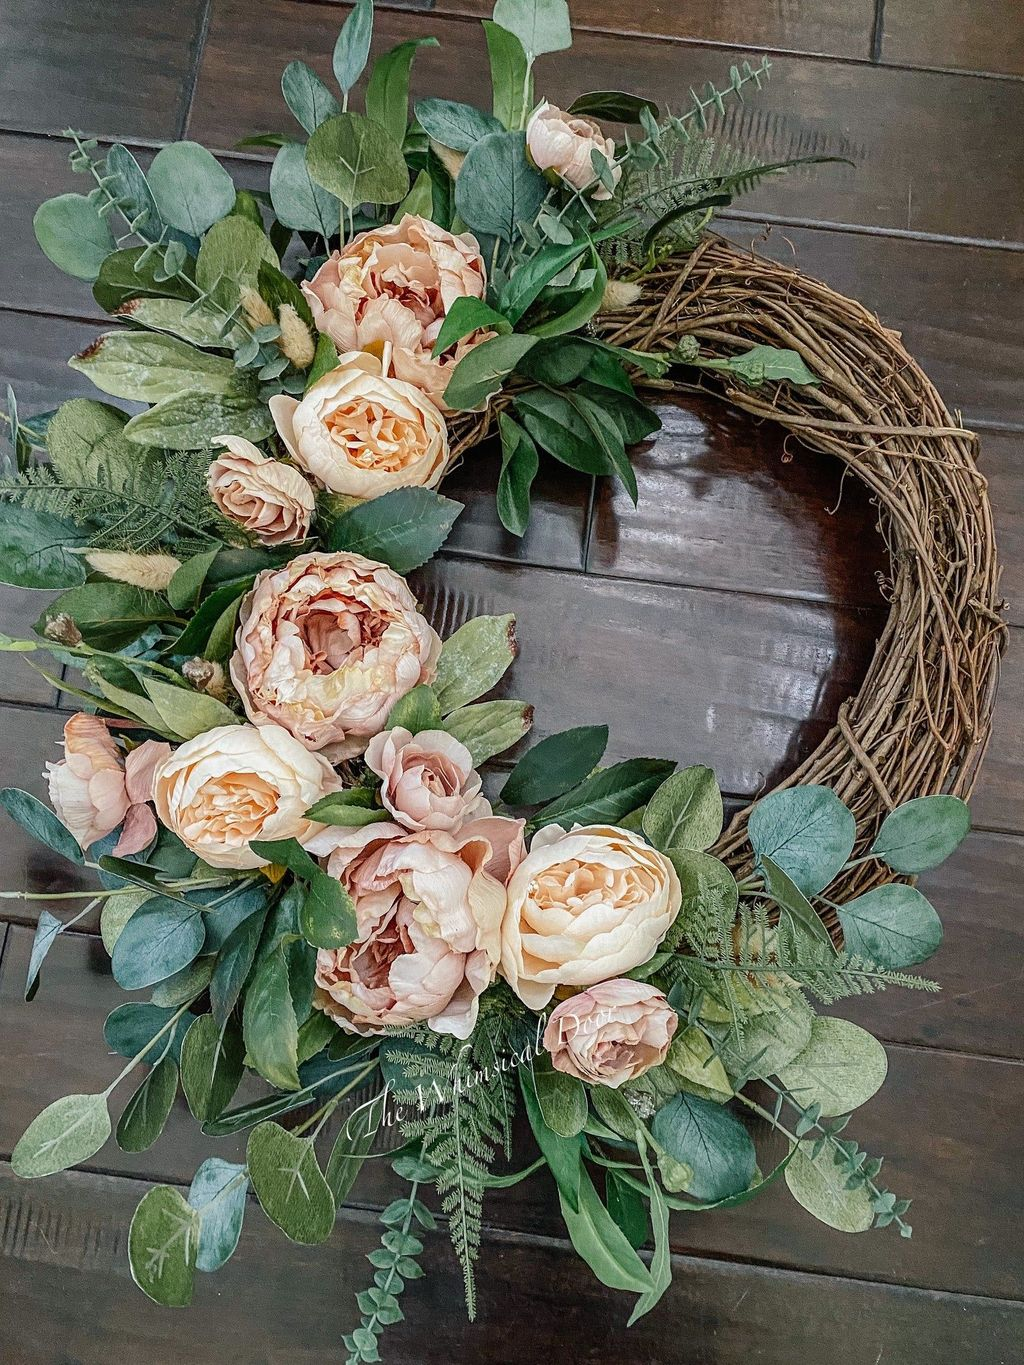 Inspiring Summer Wreath Design Ideas You Should Copy 05